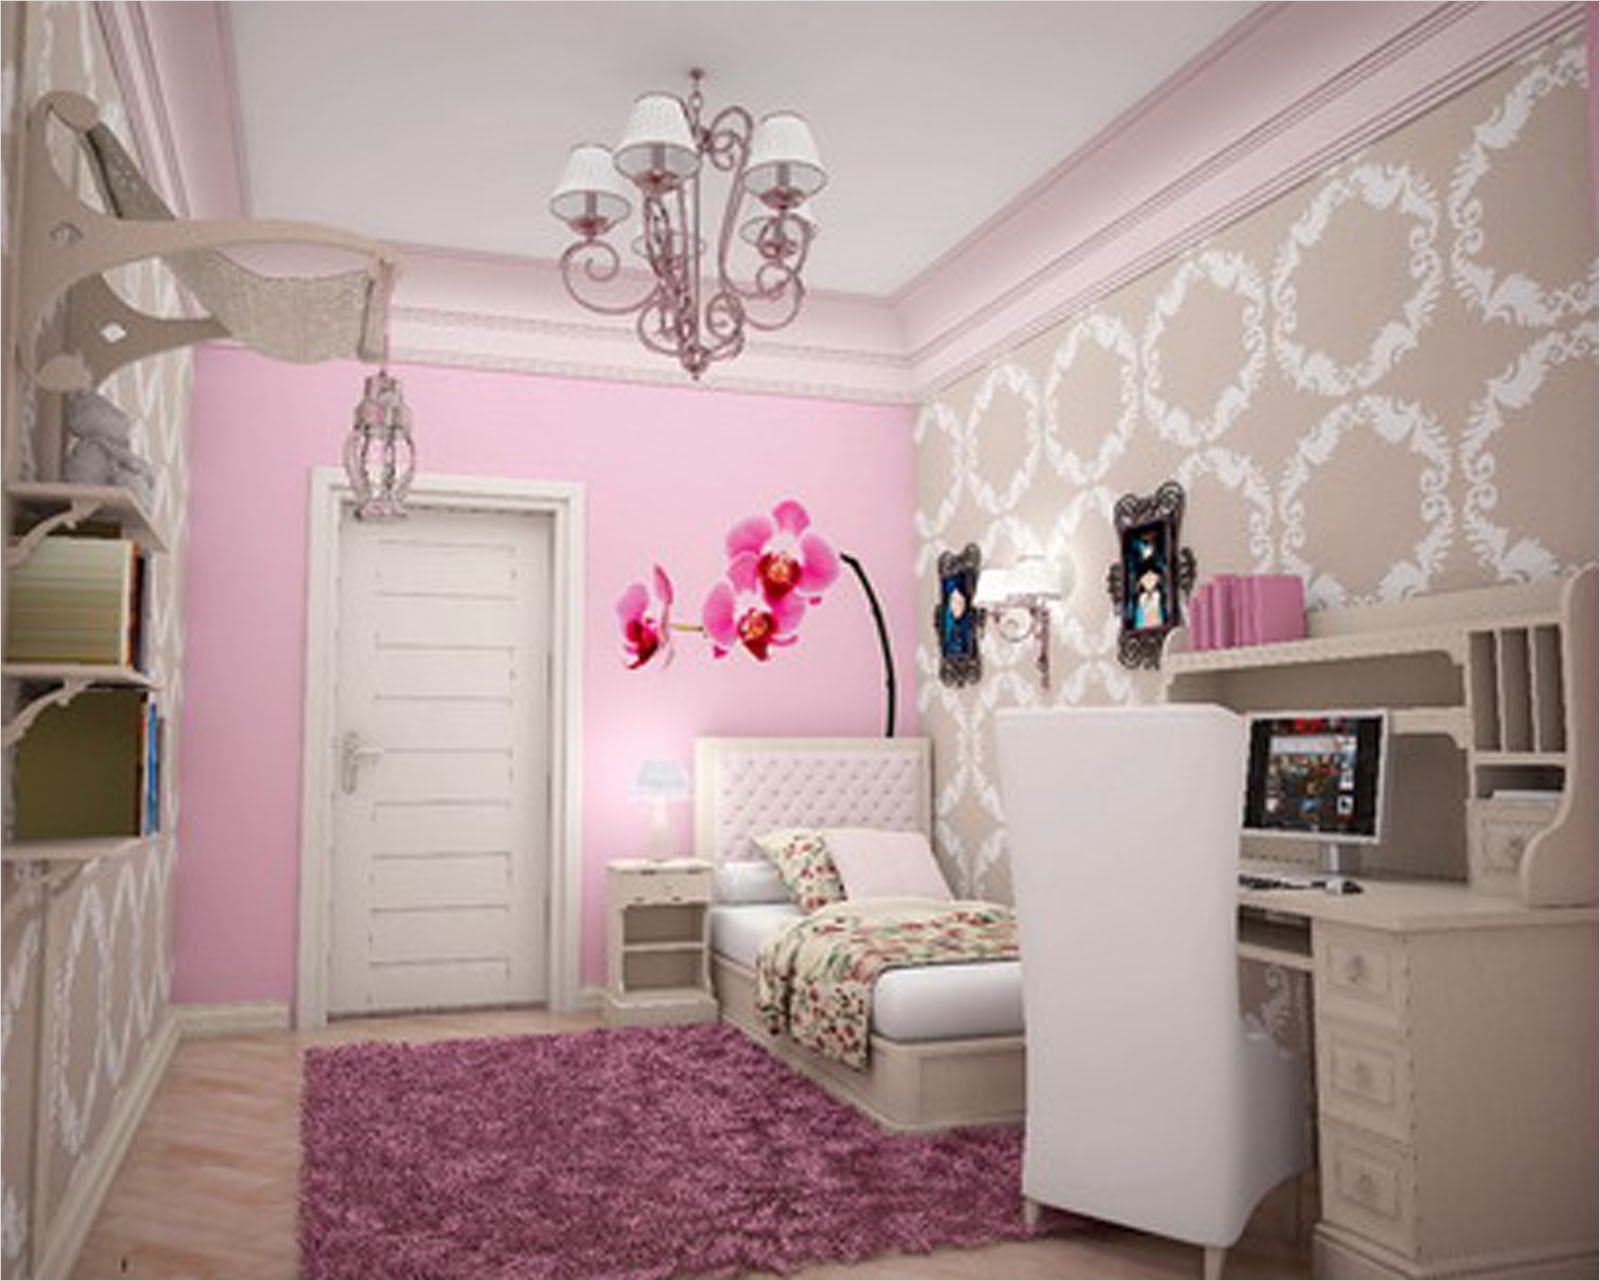 dream bedroom for teenage girls tumblr simple 41 amazing dream bedrooms for teenage girls 22 bedroom tumblr home bo that will amaze you